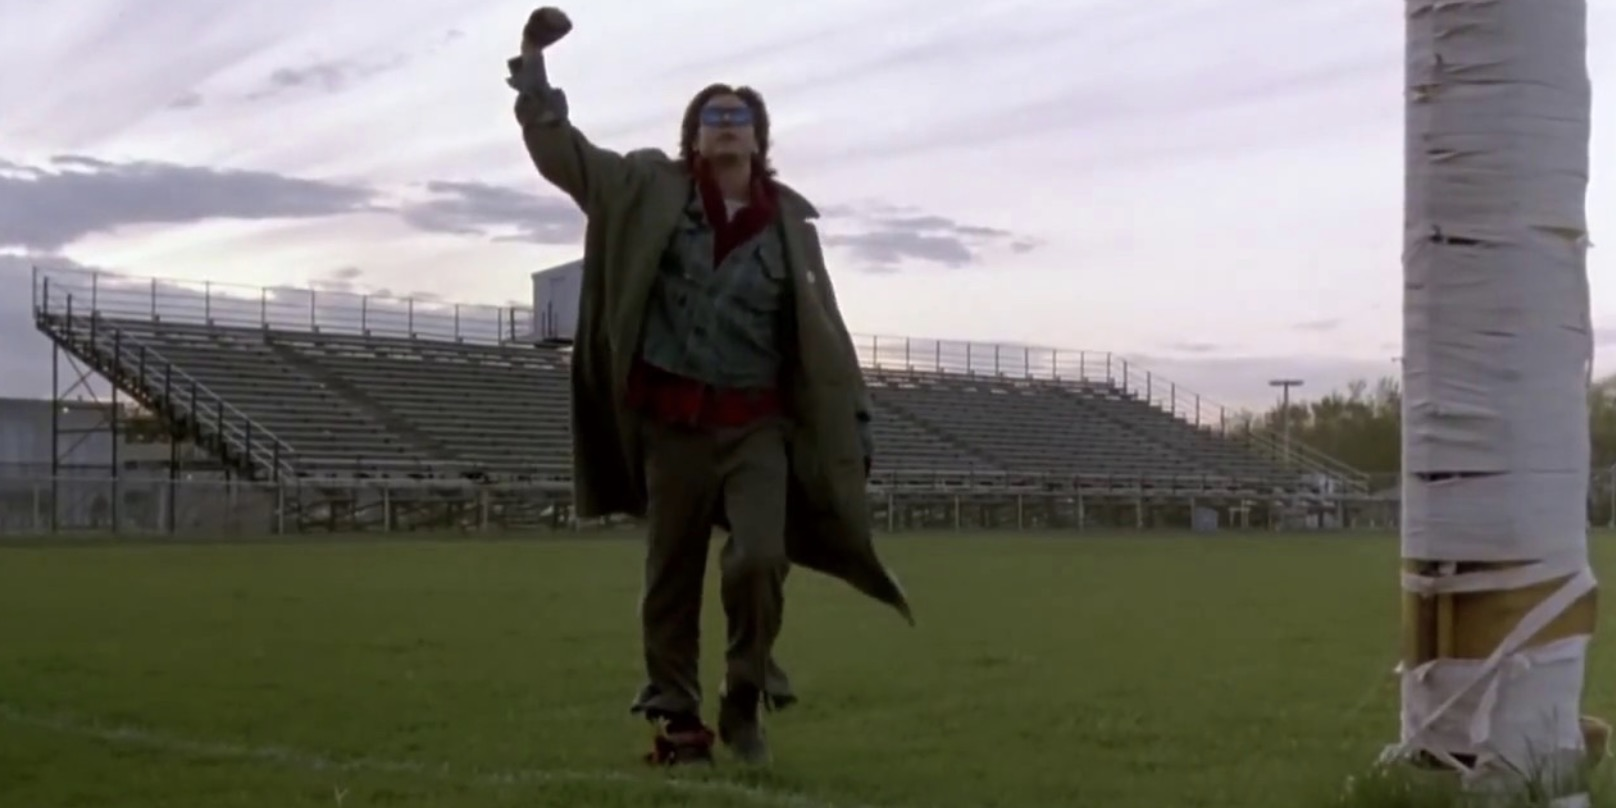 the breakfast club, 80s movie end scene, movies